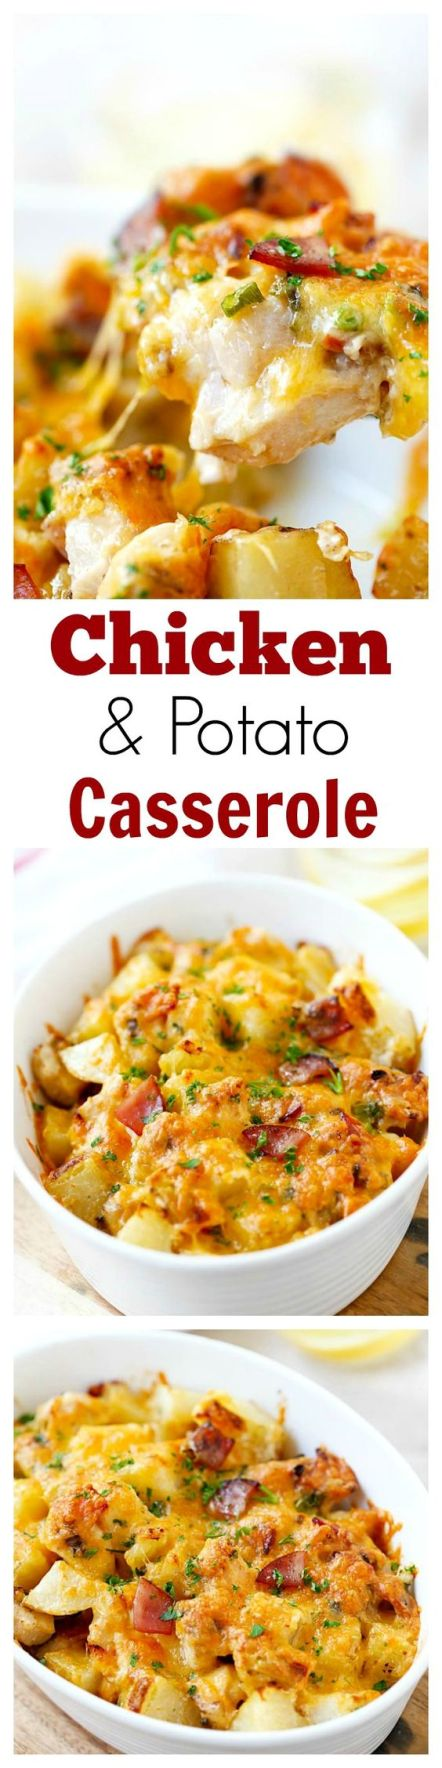 Baked Chicken and Potato Casserole - crazy delicious chicken potato casserole loaded with cheddar cheese, bacon and cream, easy recipe for the family | rasamalaysia.com: